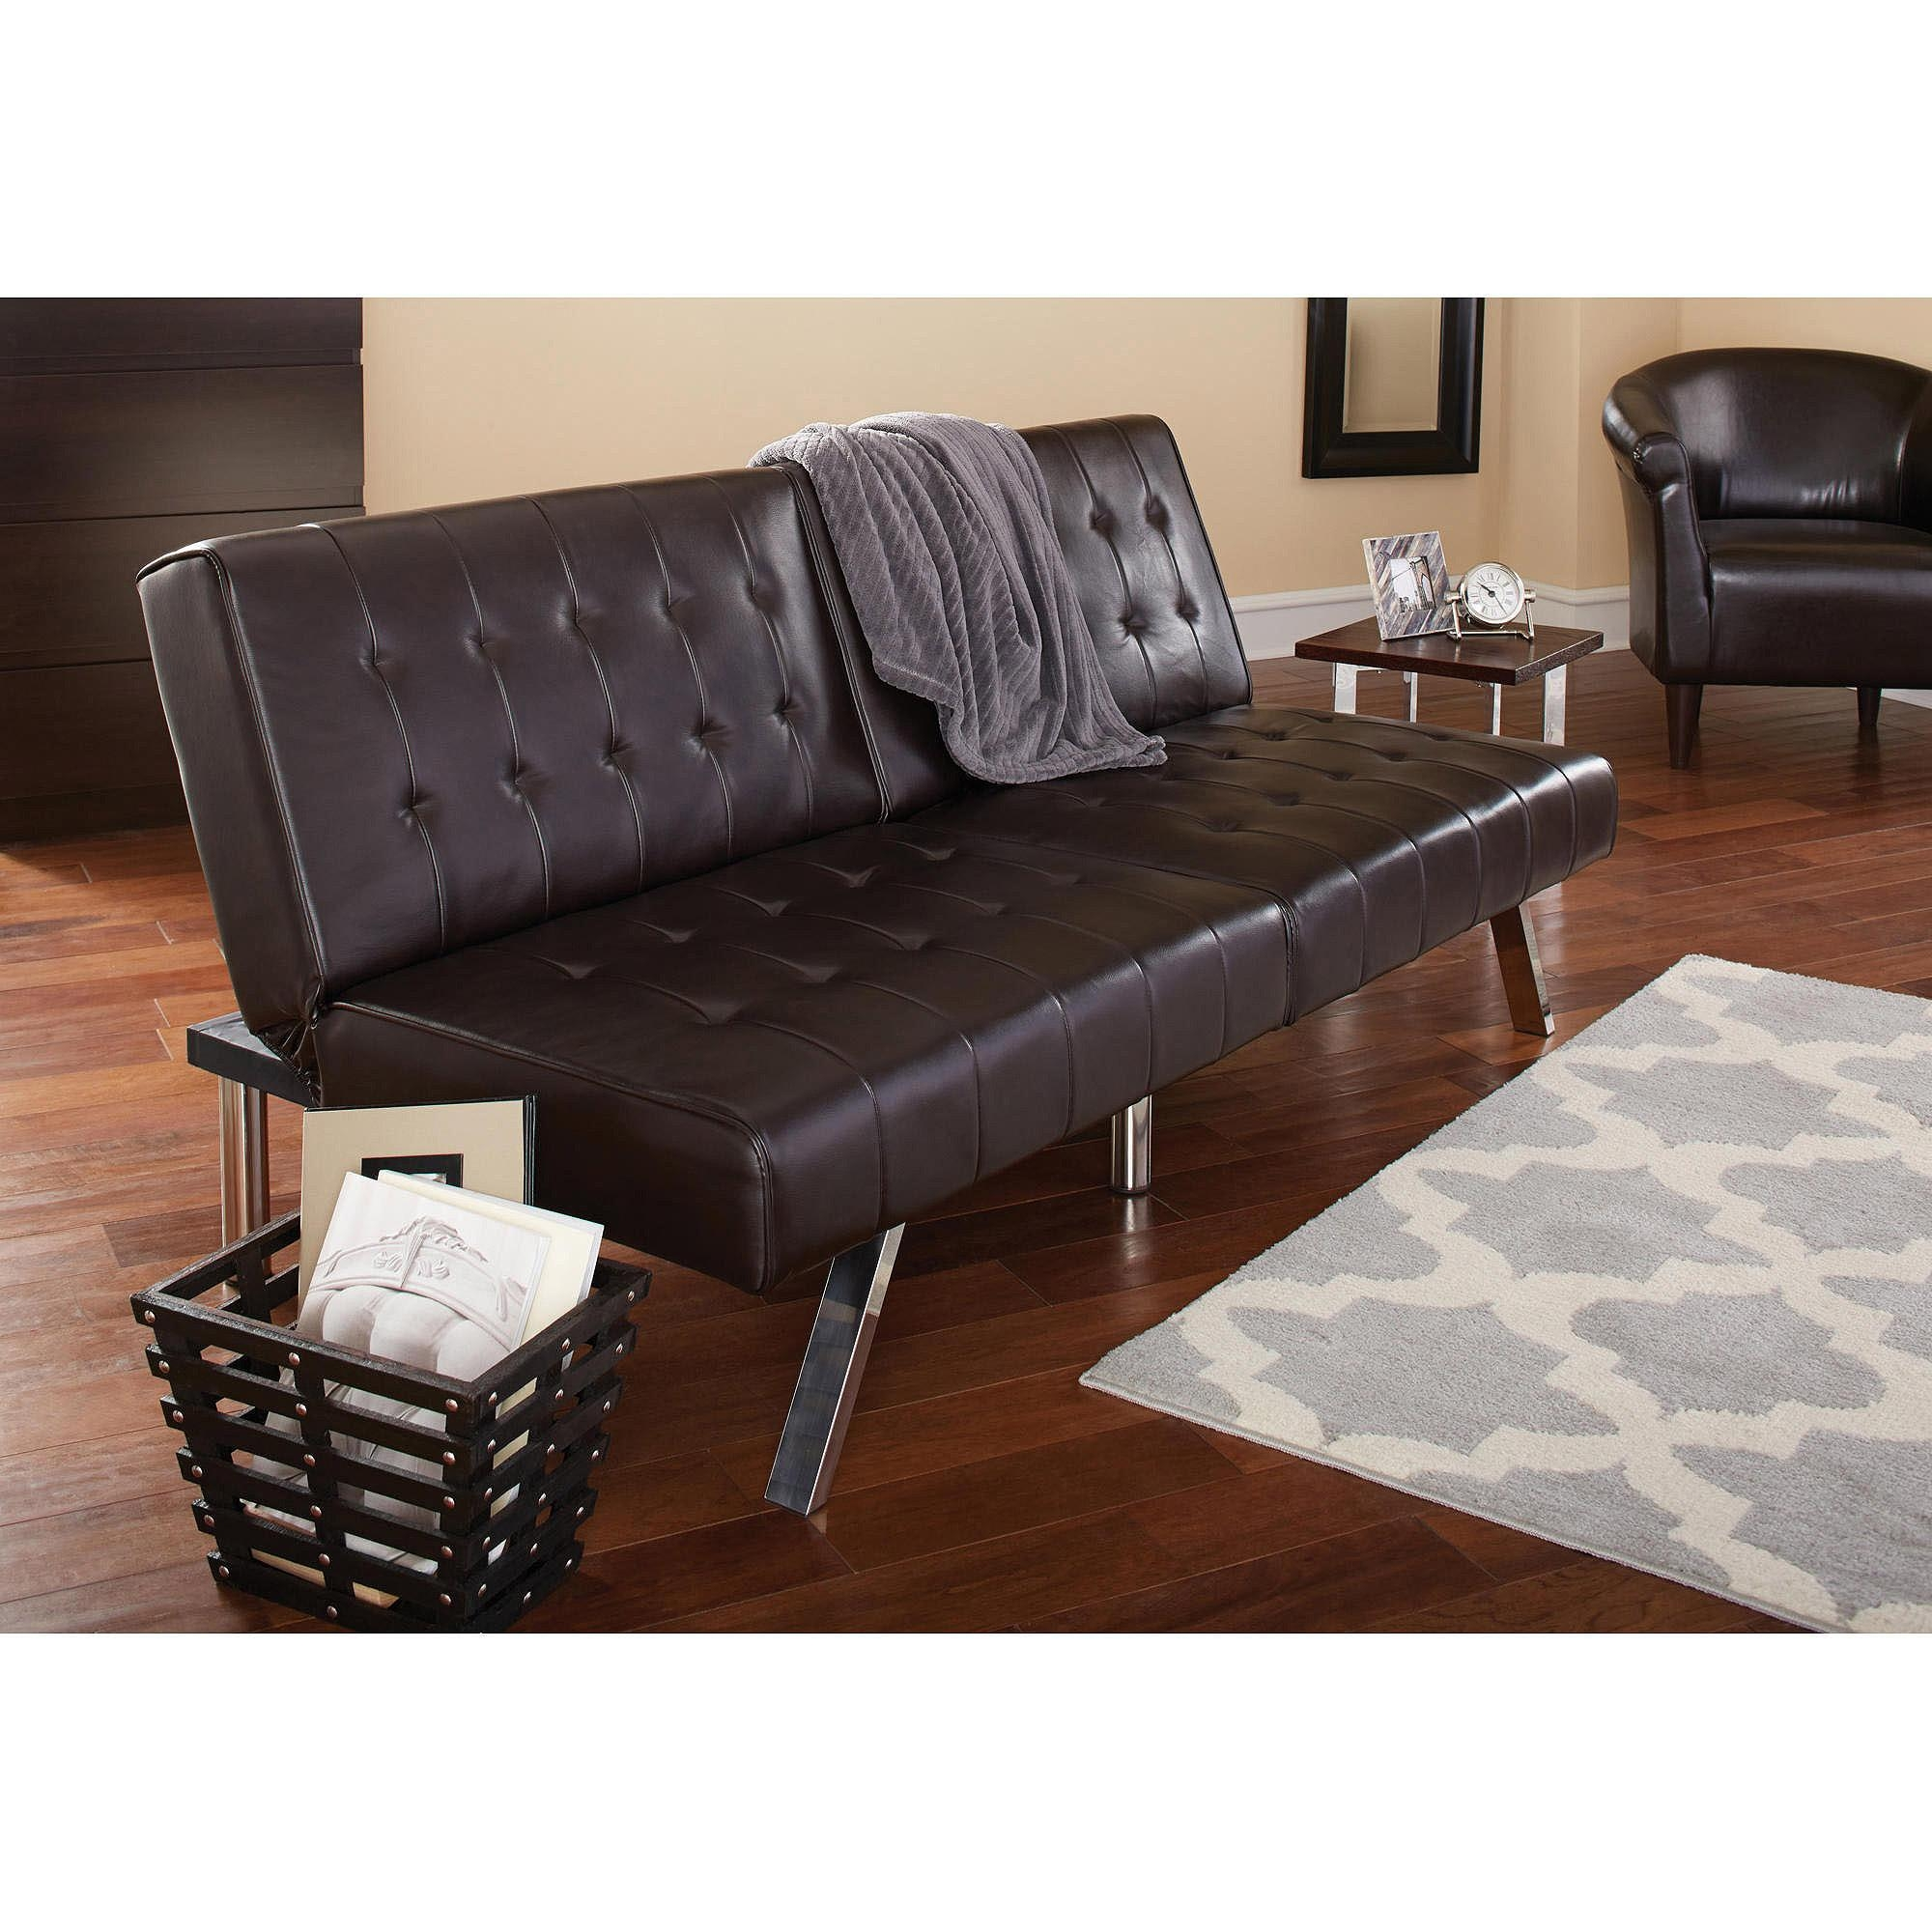 Mainstays Morgan Faux Leather Tufted Convertible Futon, Brown Within Mainstay Sofas (View 5 of 20)